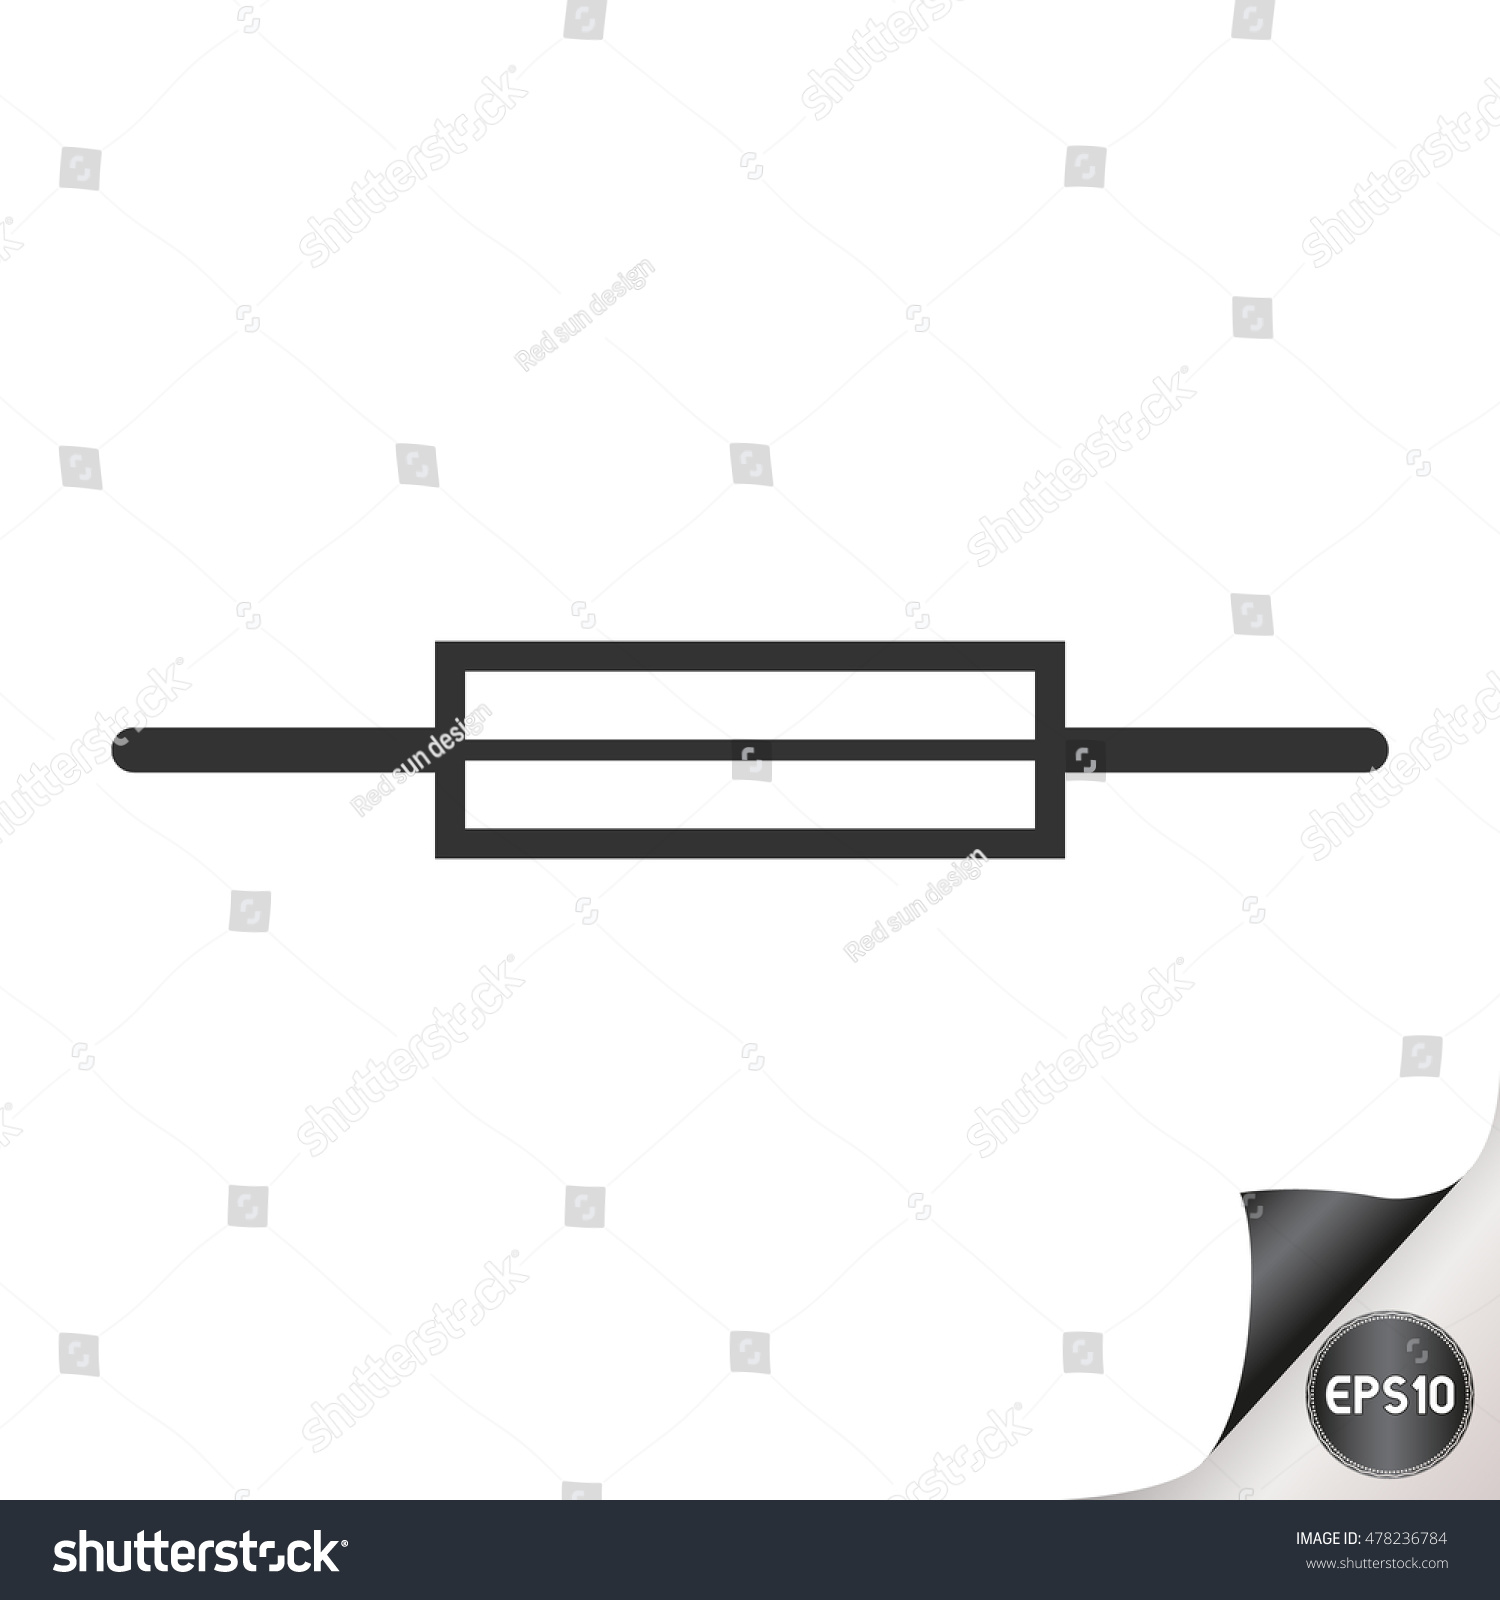 Electronic Circuit Symbols Fuse Stock Vector 478236784 - Shutterstock